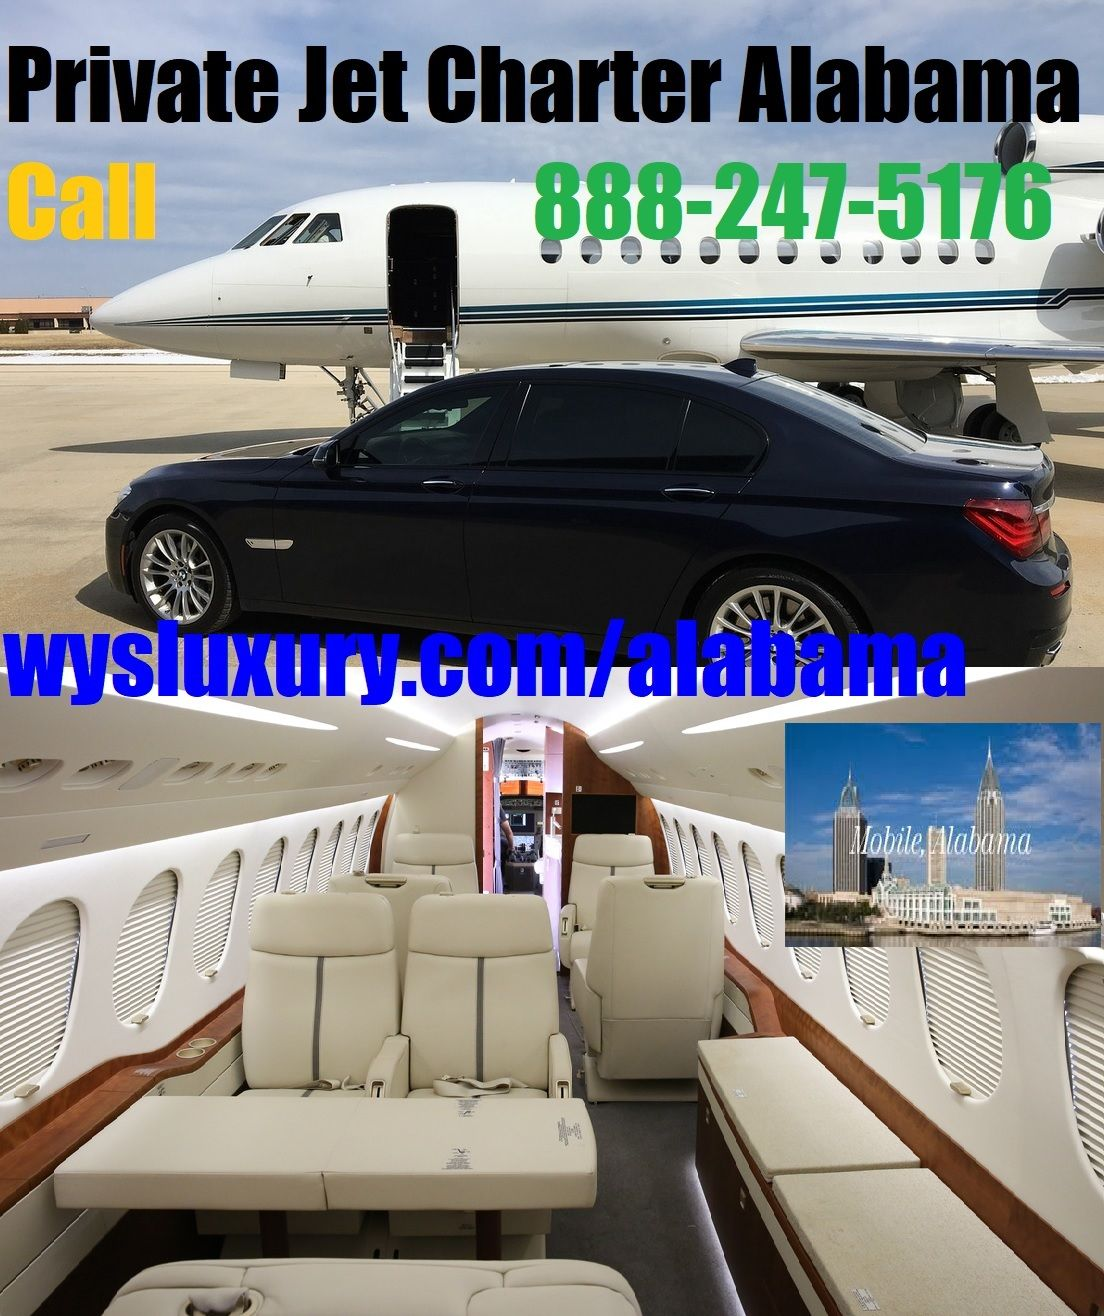 Private Jet Quote Alluring Executive Travel Private Jet Charter Mobile Dothan Enterprise